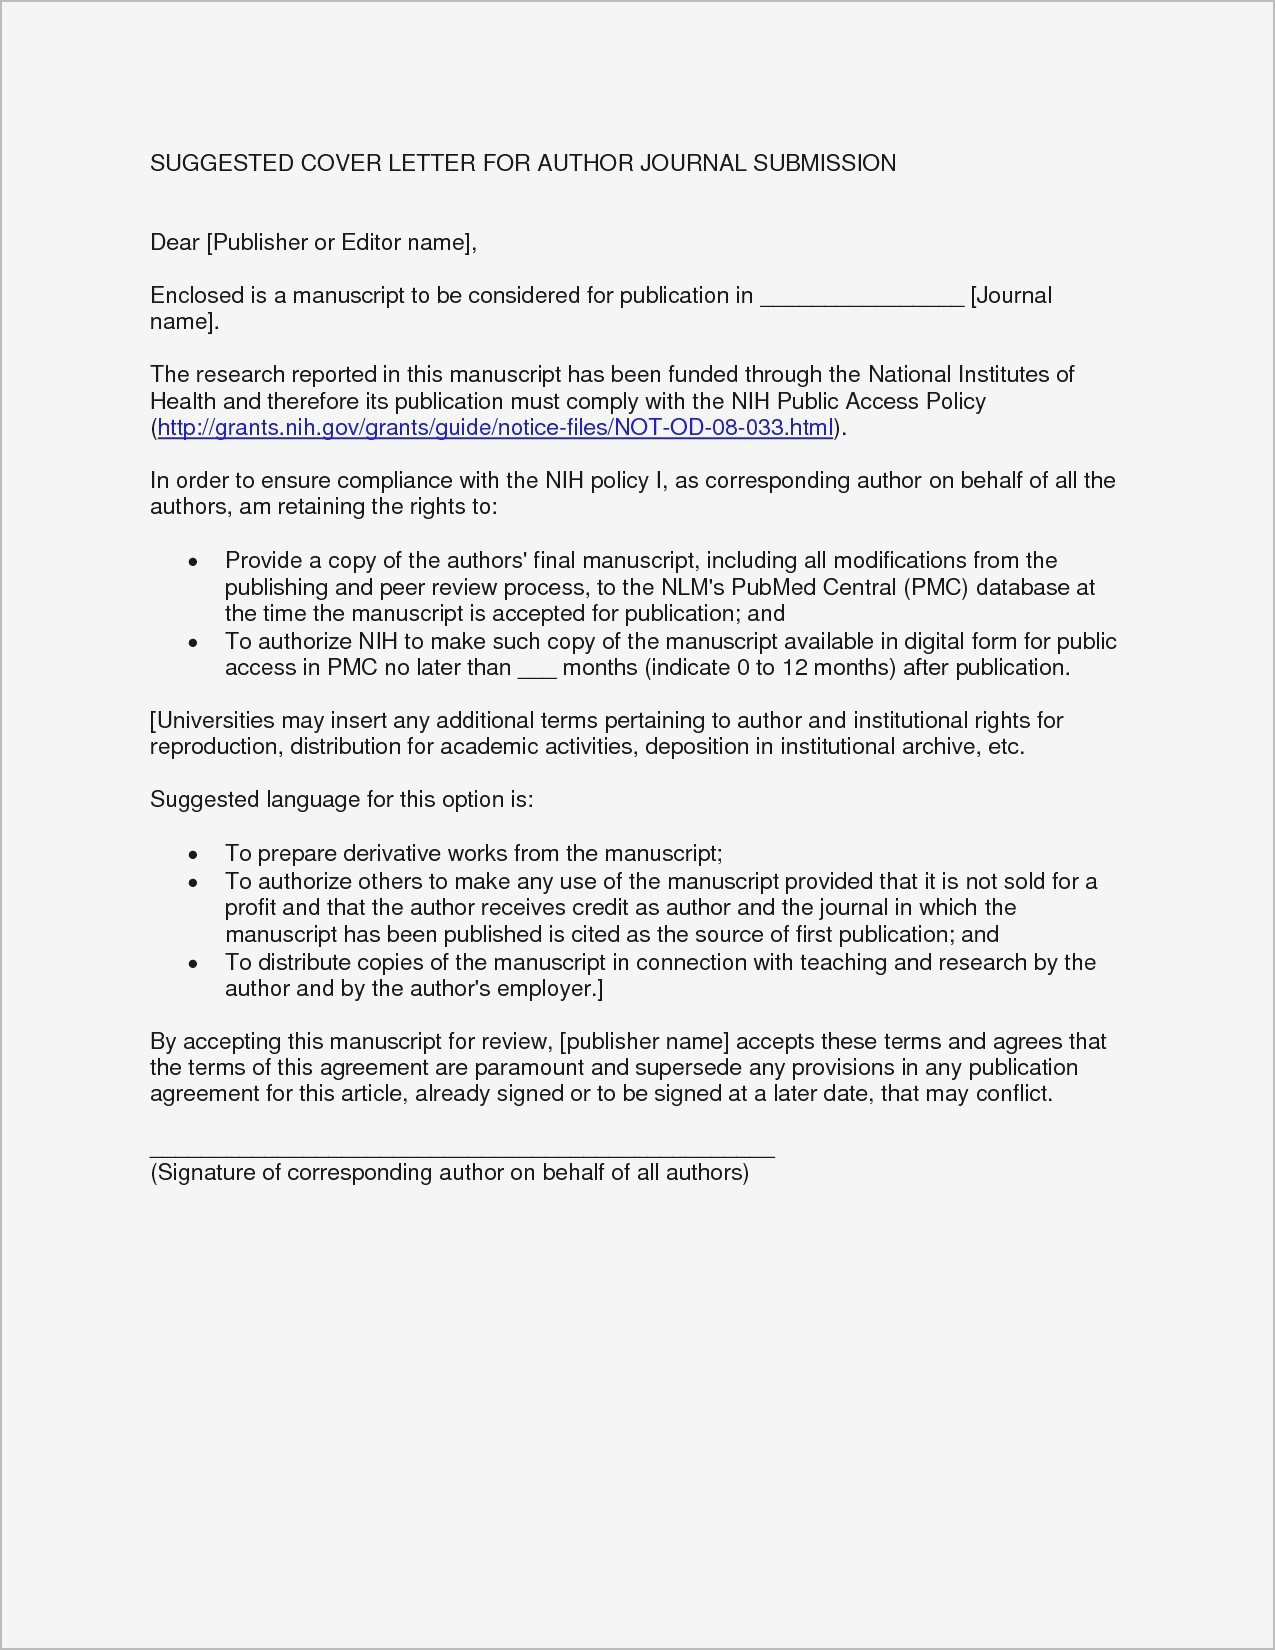 Non Conformance Letter Template - Writing Business Requirements Template Best Fax Cover Letter